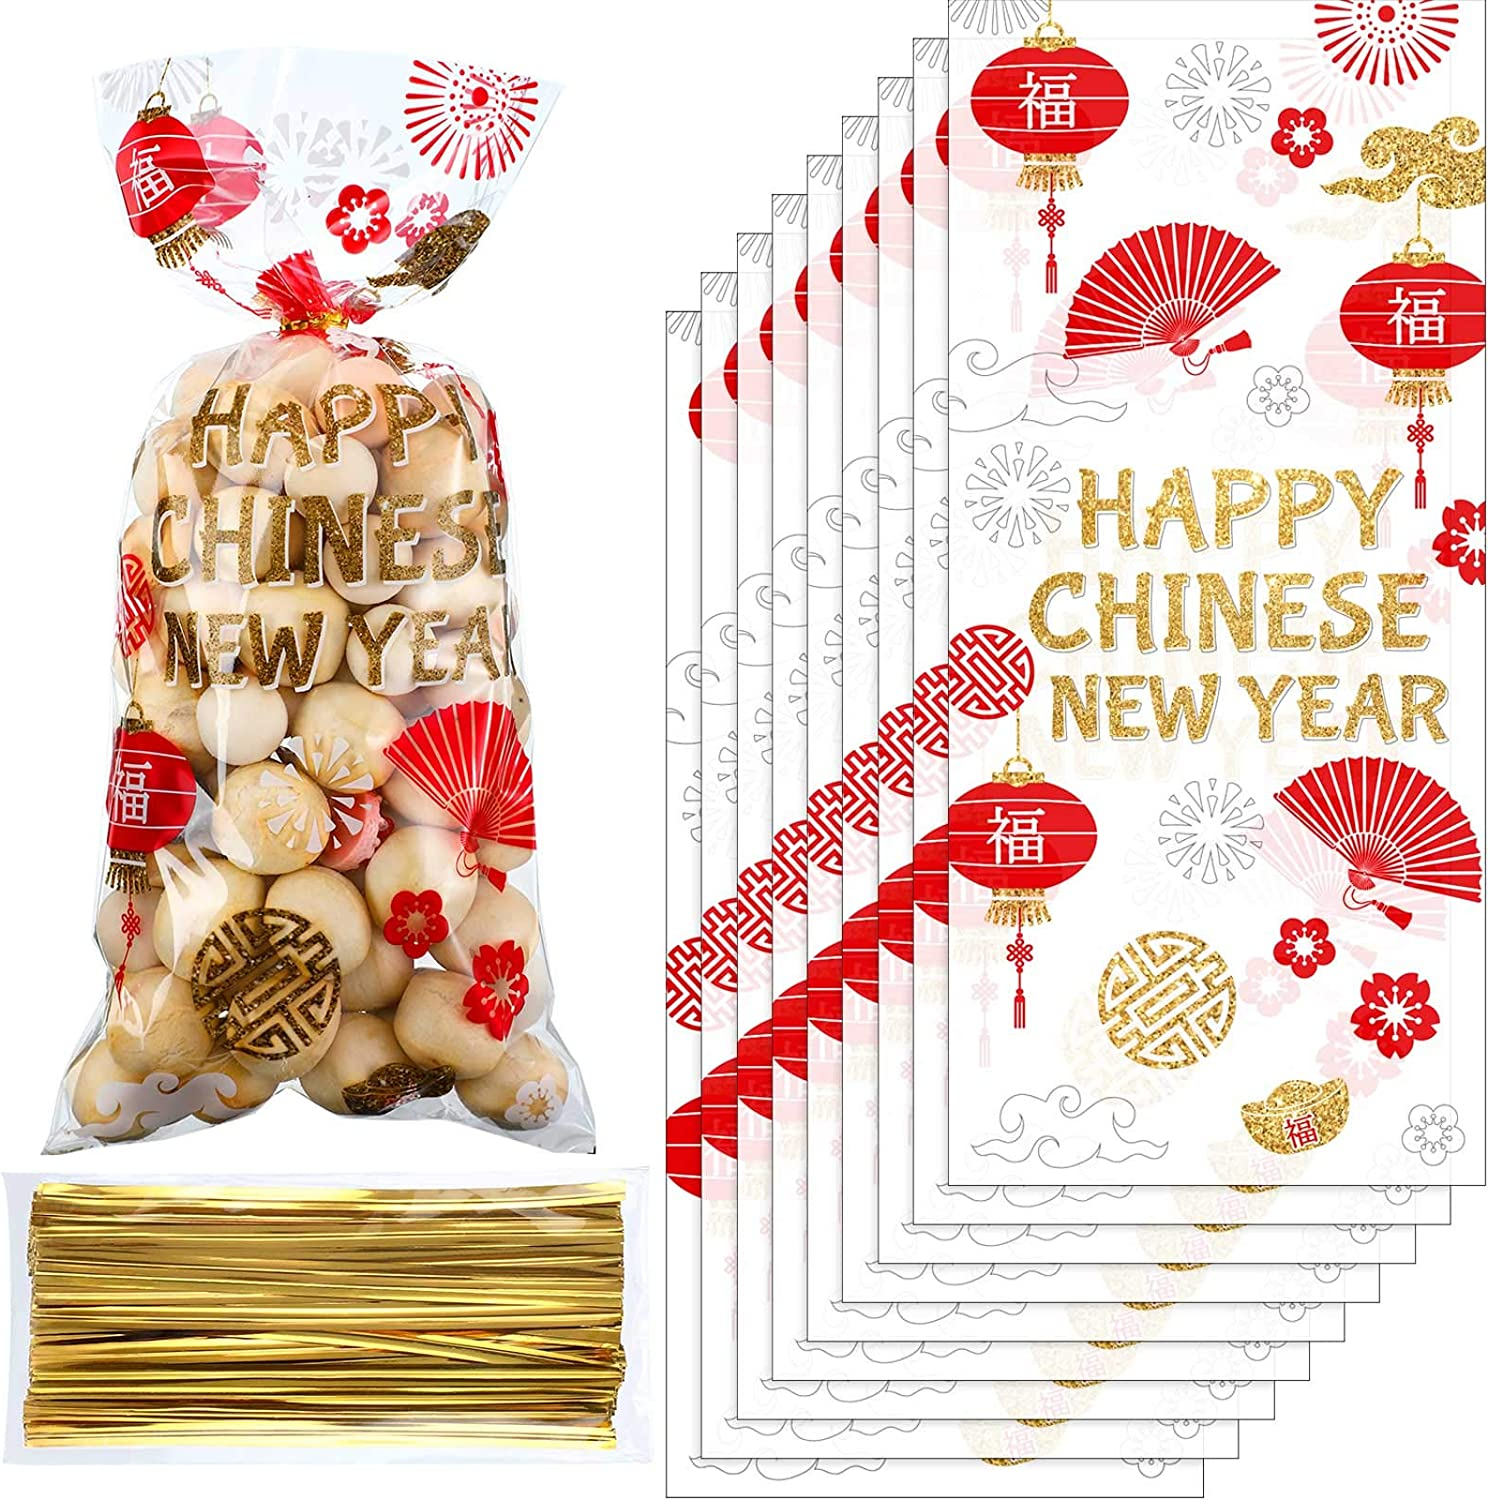 100 Pieces Chinese New Year Cellophane Treat Bags, Red Gold Chinese Party Plastic Candy Bags Goodies Present Bags with 100 Gold Twist Ties for Year of The Ox Lunar Year Spring Festival Party Supplies